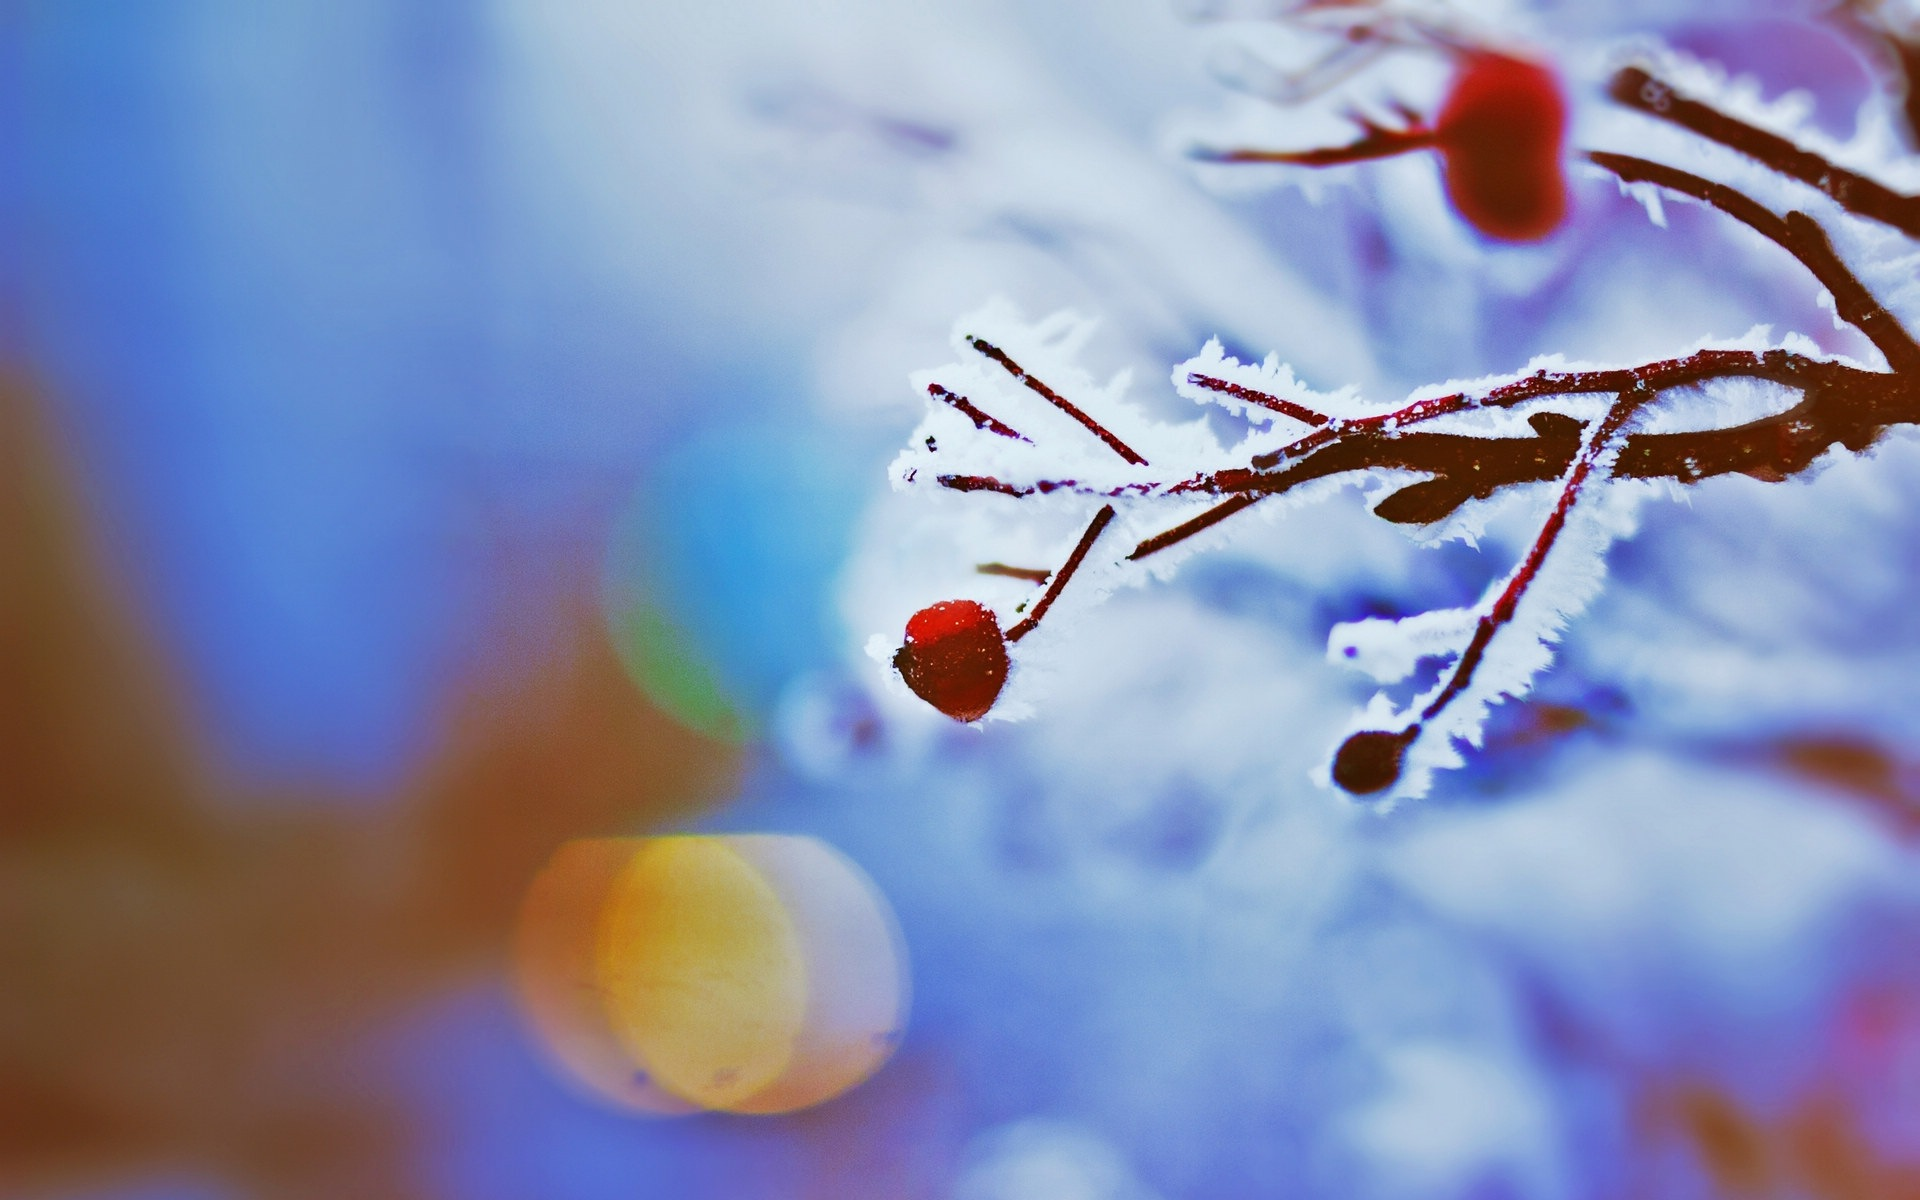 Winter berries, frost snow HD wallpapers #11 - 1920x1200.